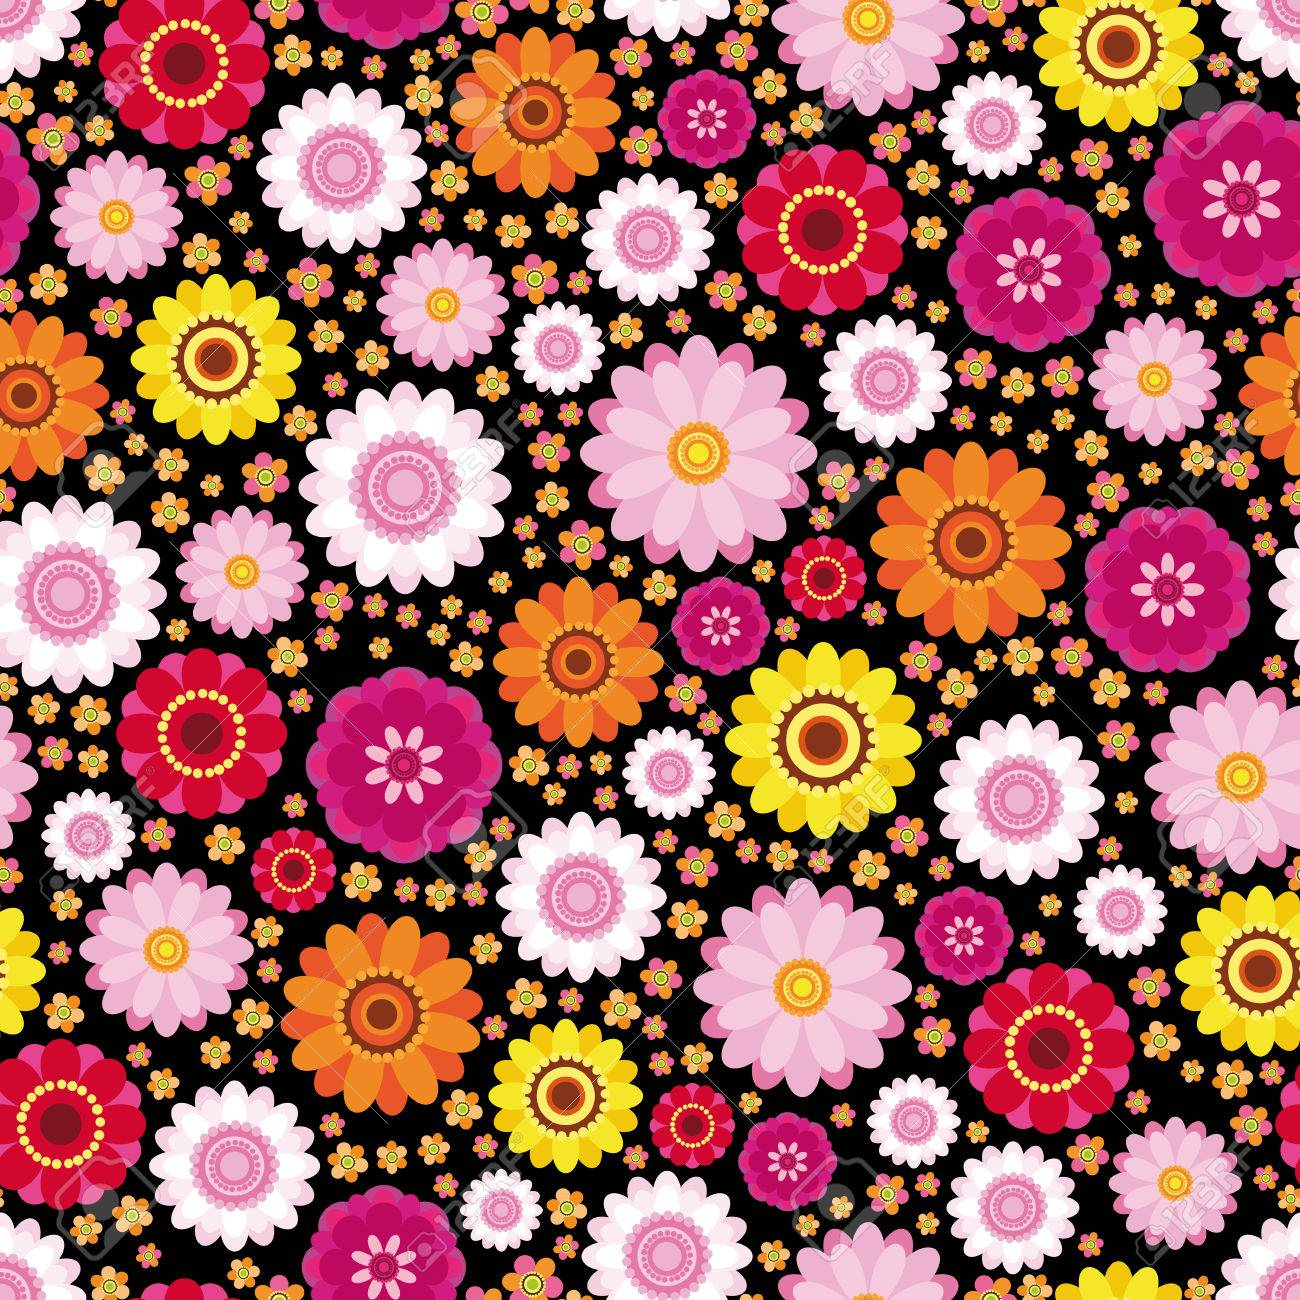 Easter Floral Background An Illustration For Your Design Project